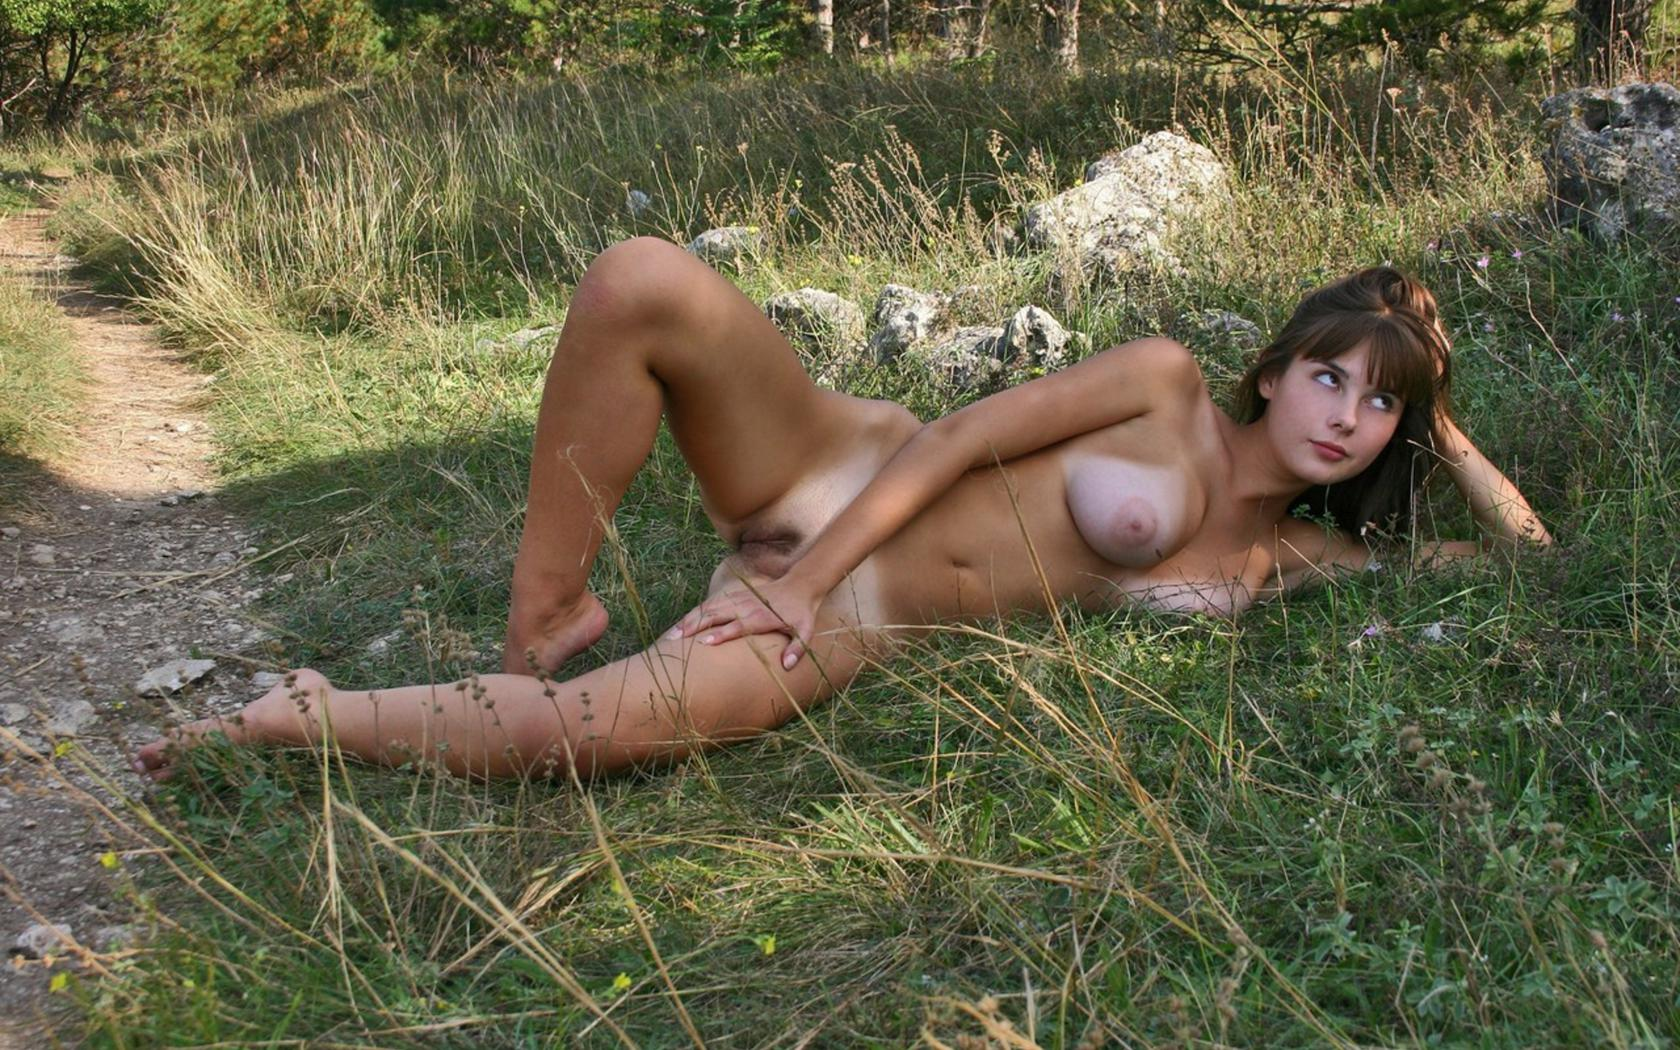 Outdoor erotic art